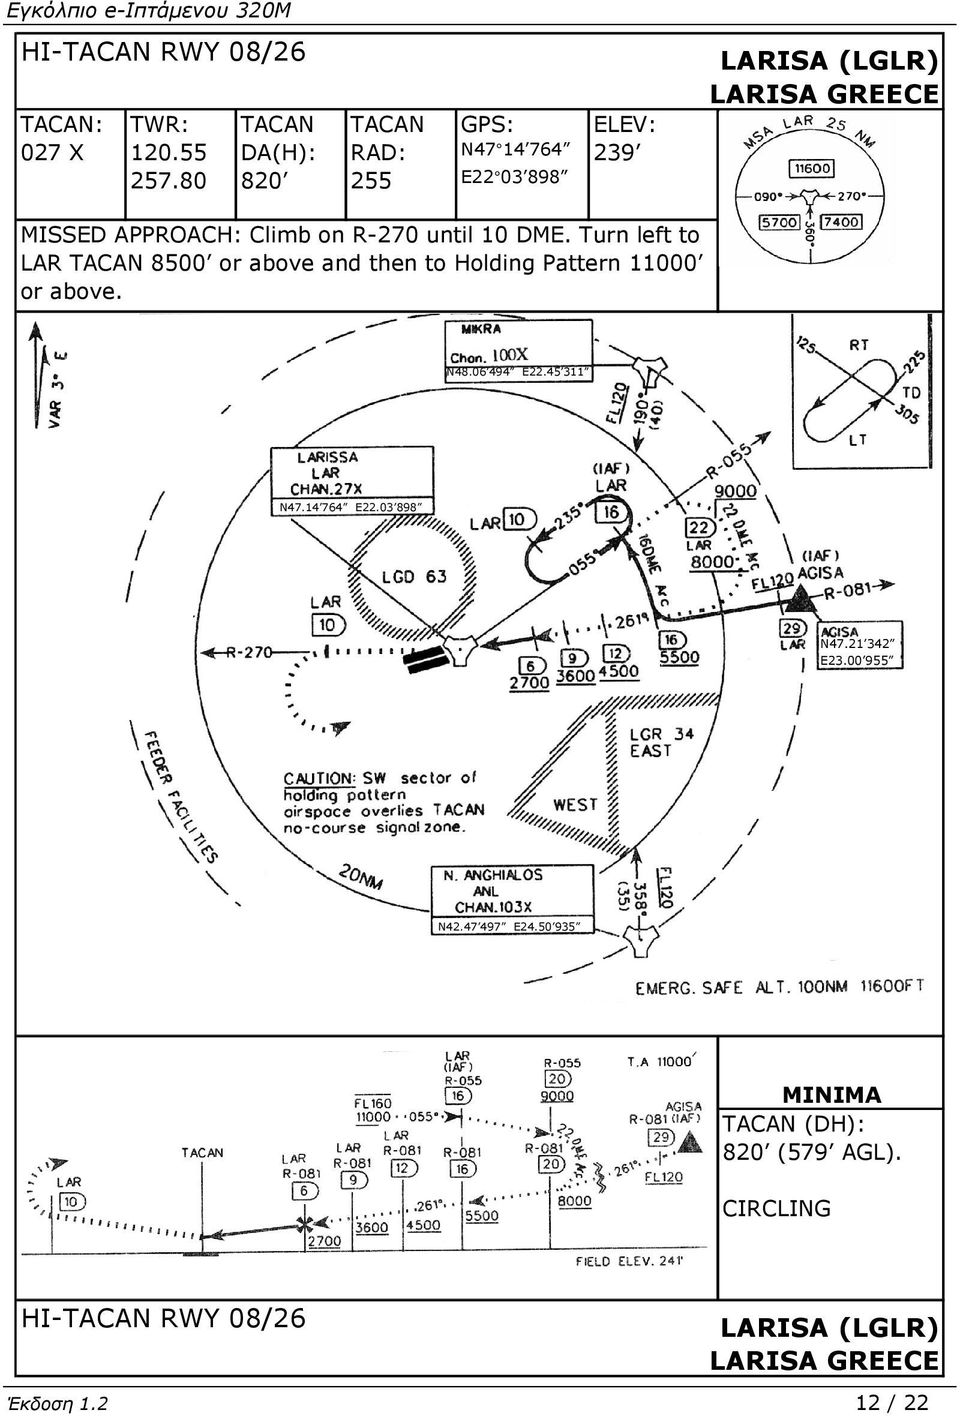 Climb on R-270 until 10 DME. Turn left to LAR TACAN 8500 or above and then to Holding Pattern 11000 or above. N48.